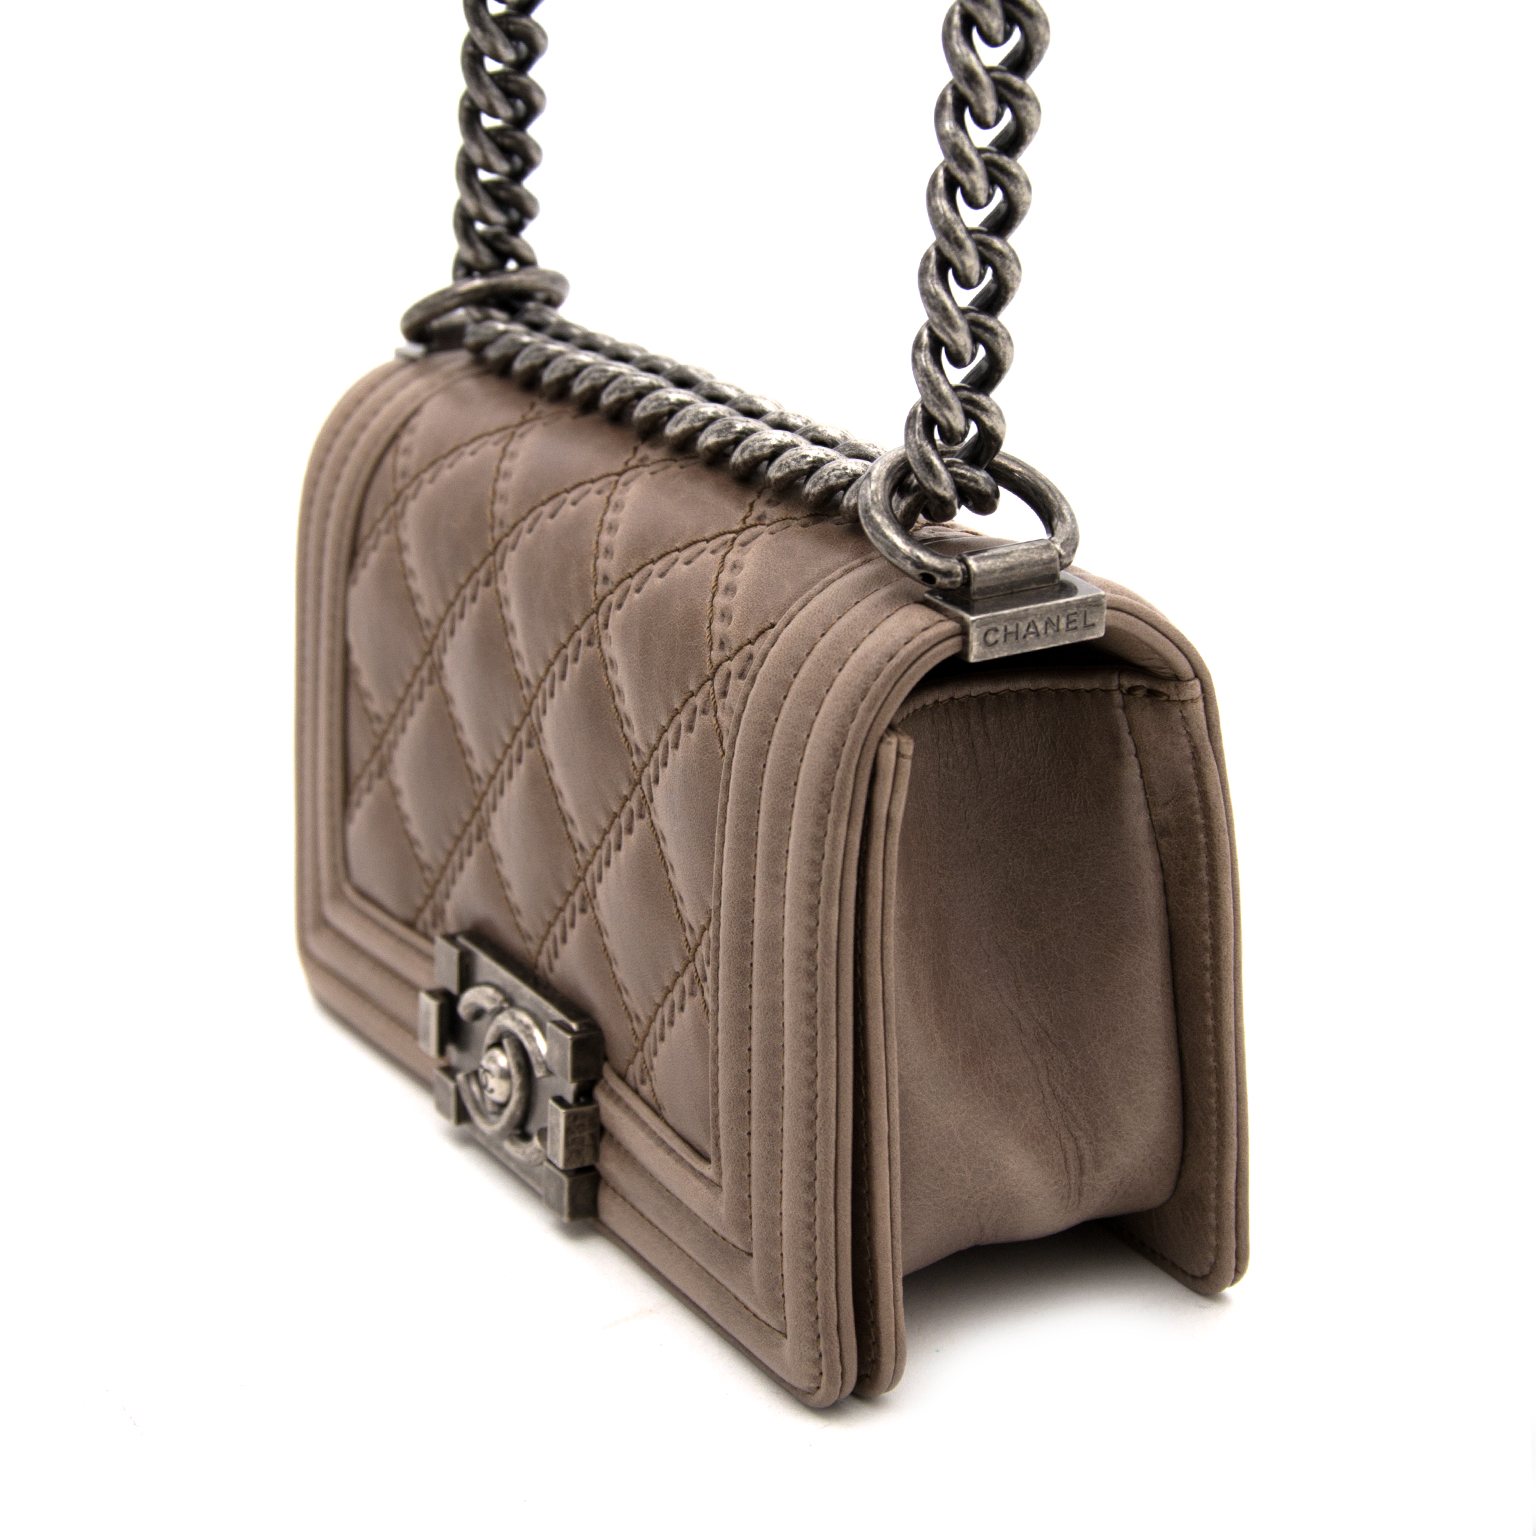 ... shop real real 100% authentic luxury chaneltaupe small boy bag webshop  labellov.com Antwerp 08b72c4be42f0